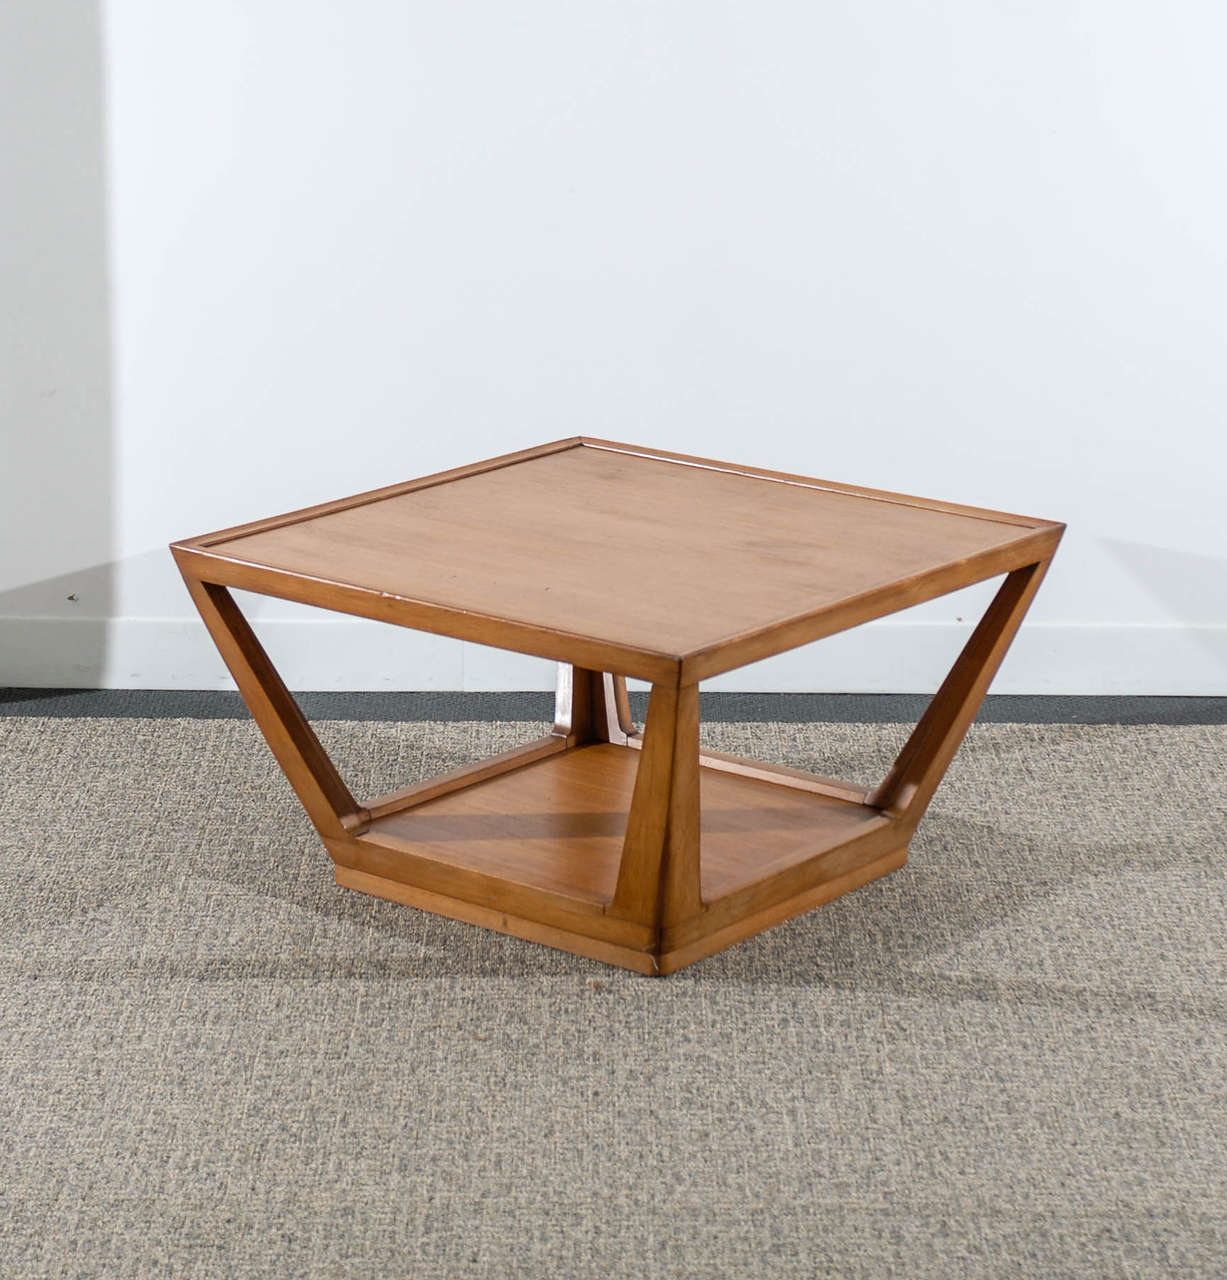 Edward wormley for drexel trapezoid coffee table at 1stdibs edward wormley for drexel trapezoid coffee table 2 geotapseo Image collections